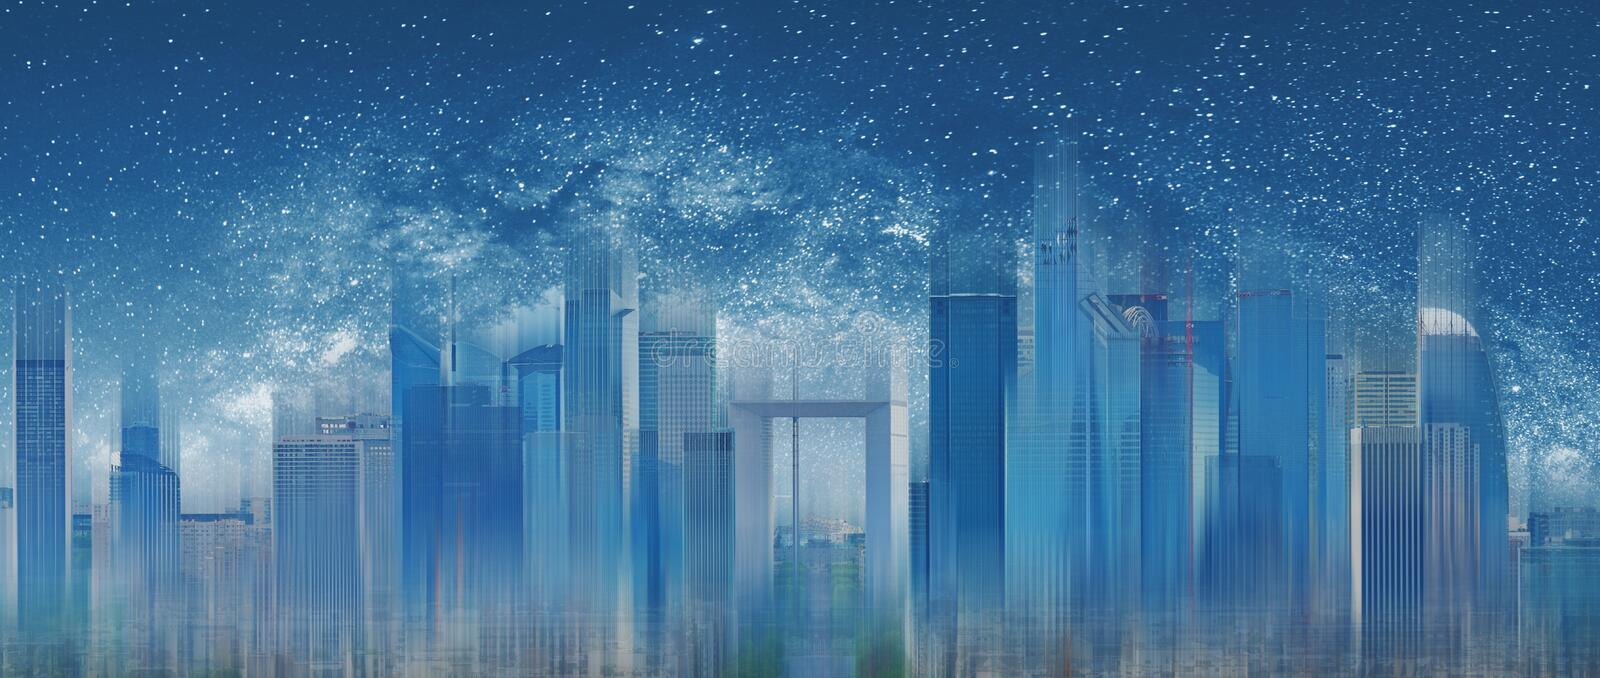 Futuristic city at night with starry sky background. Abstract modern blue building background. S stock photos